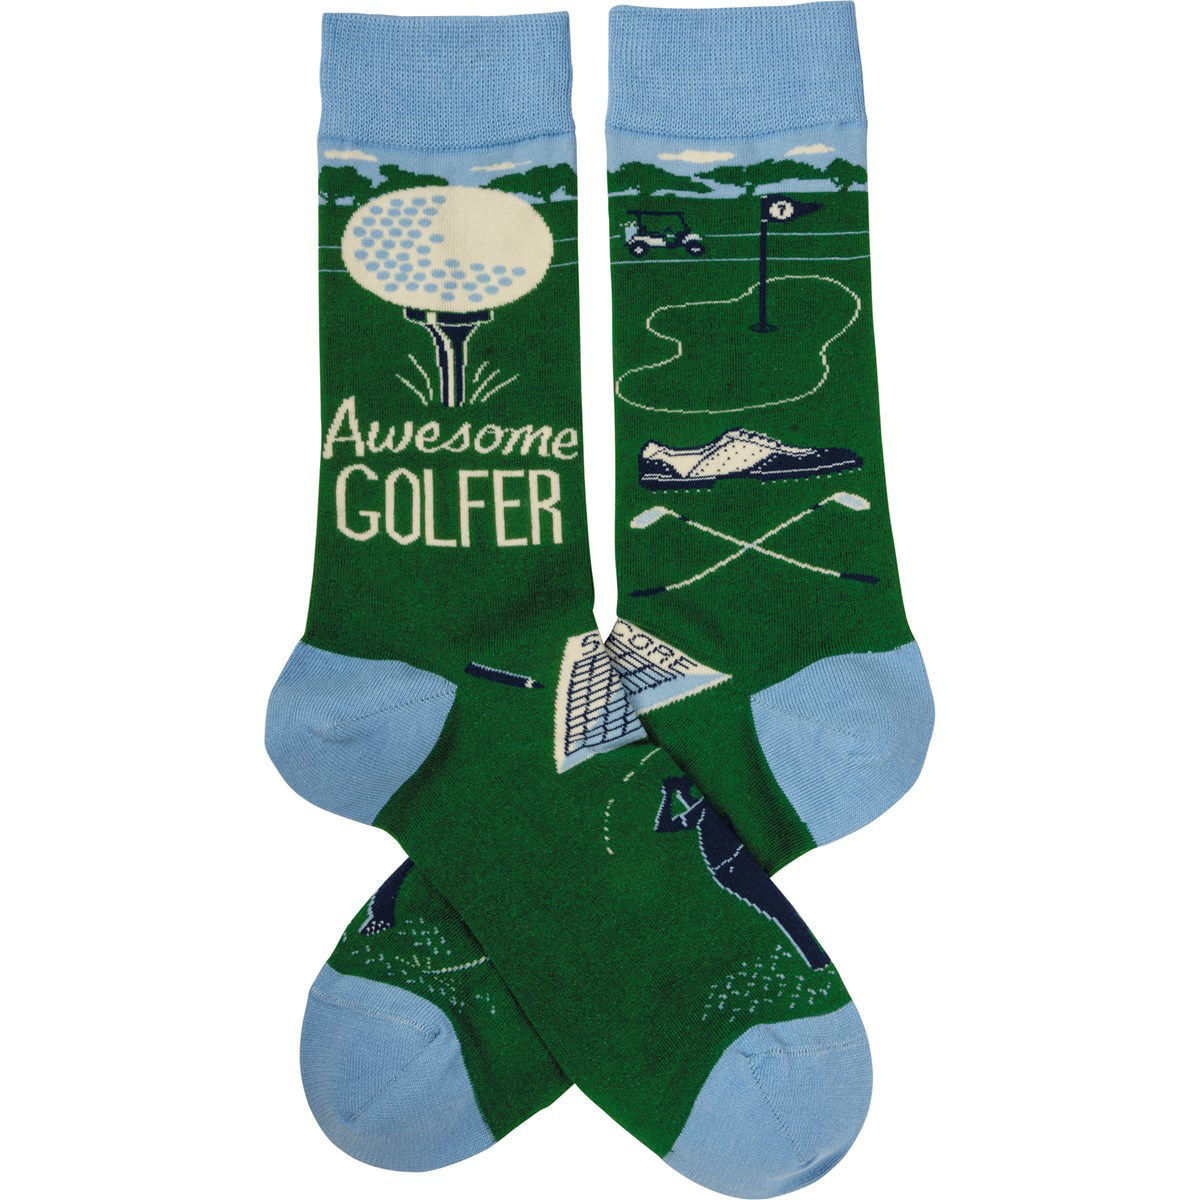 Awesome Golfer Socks by Primitives by Kathy